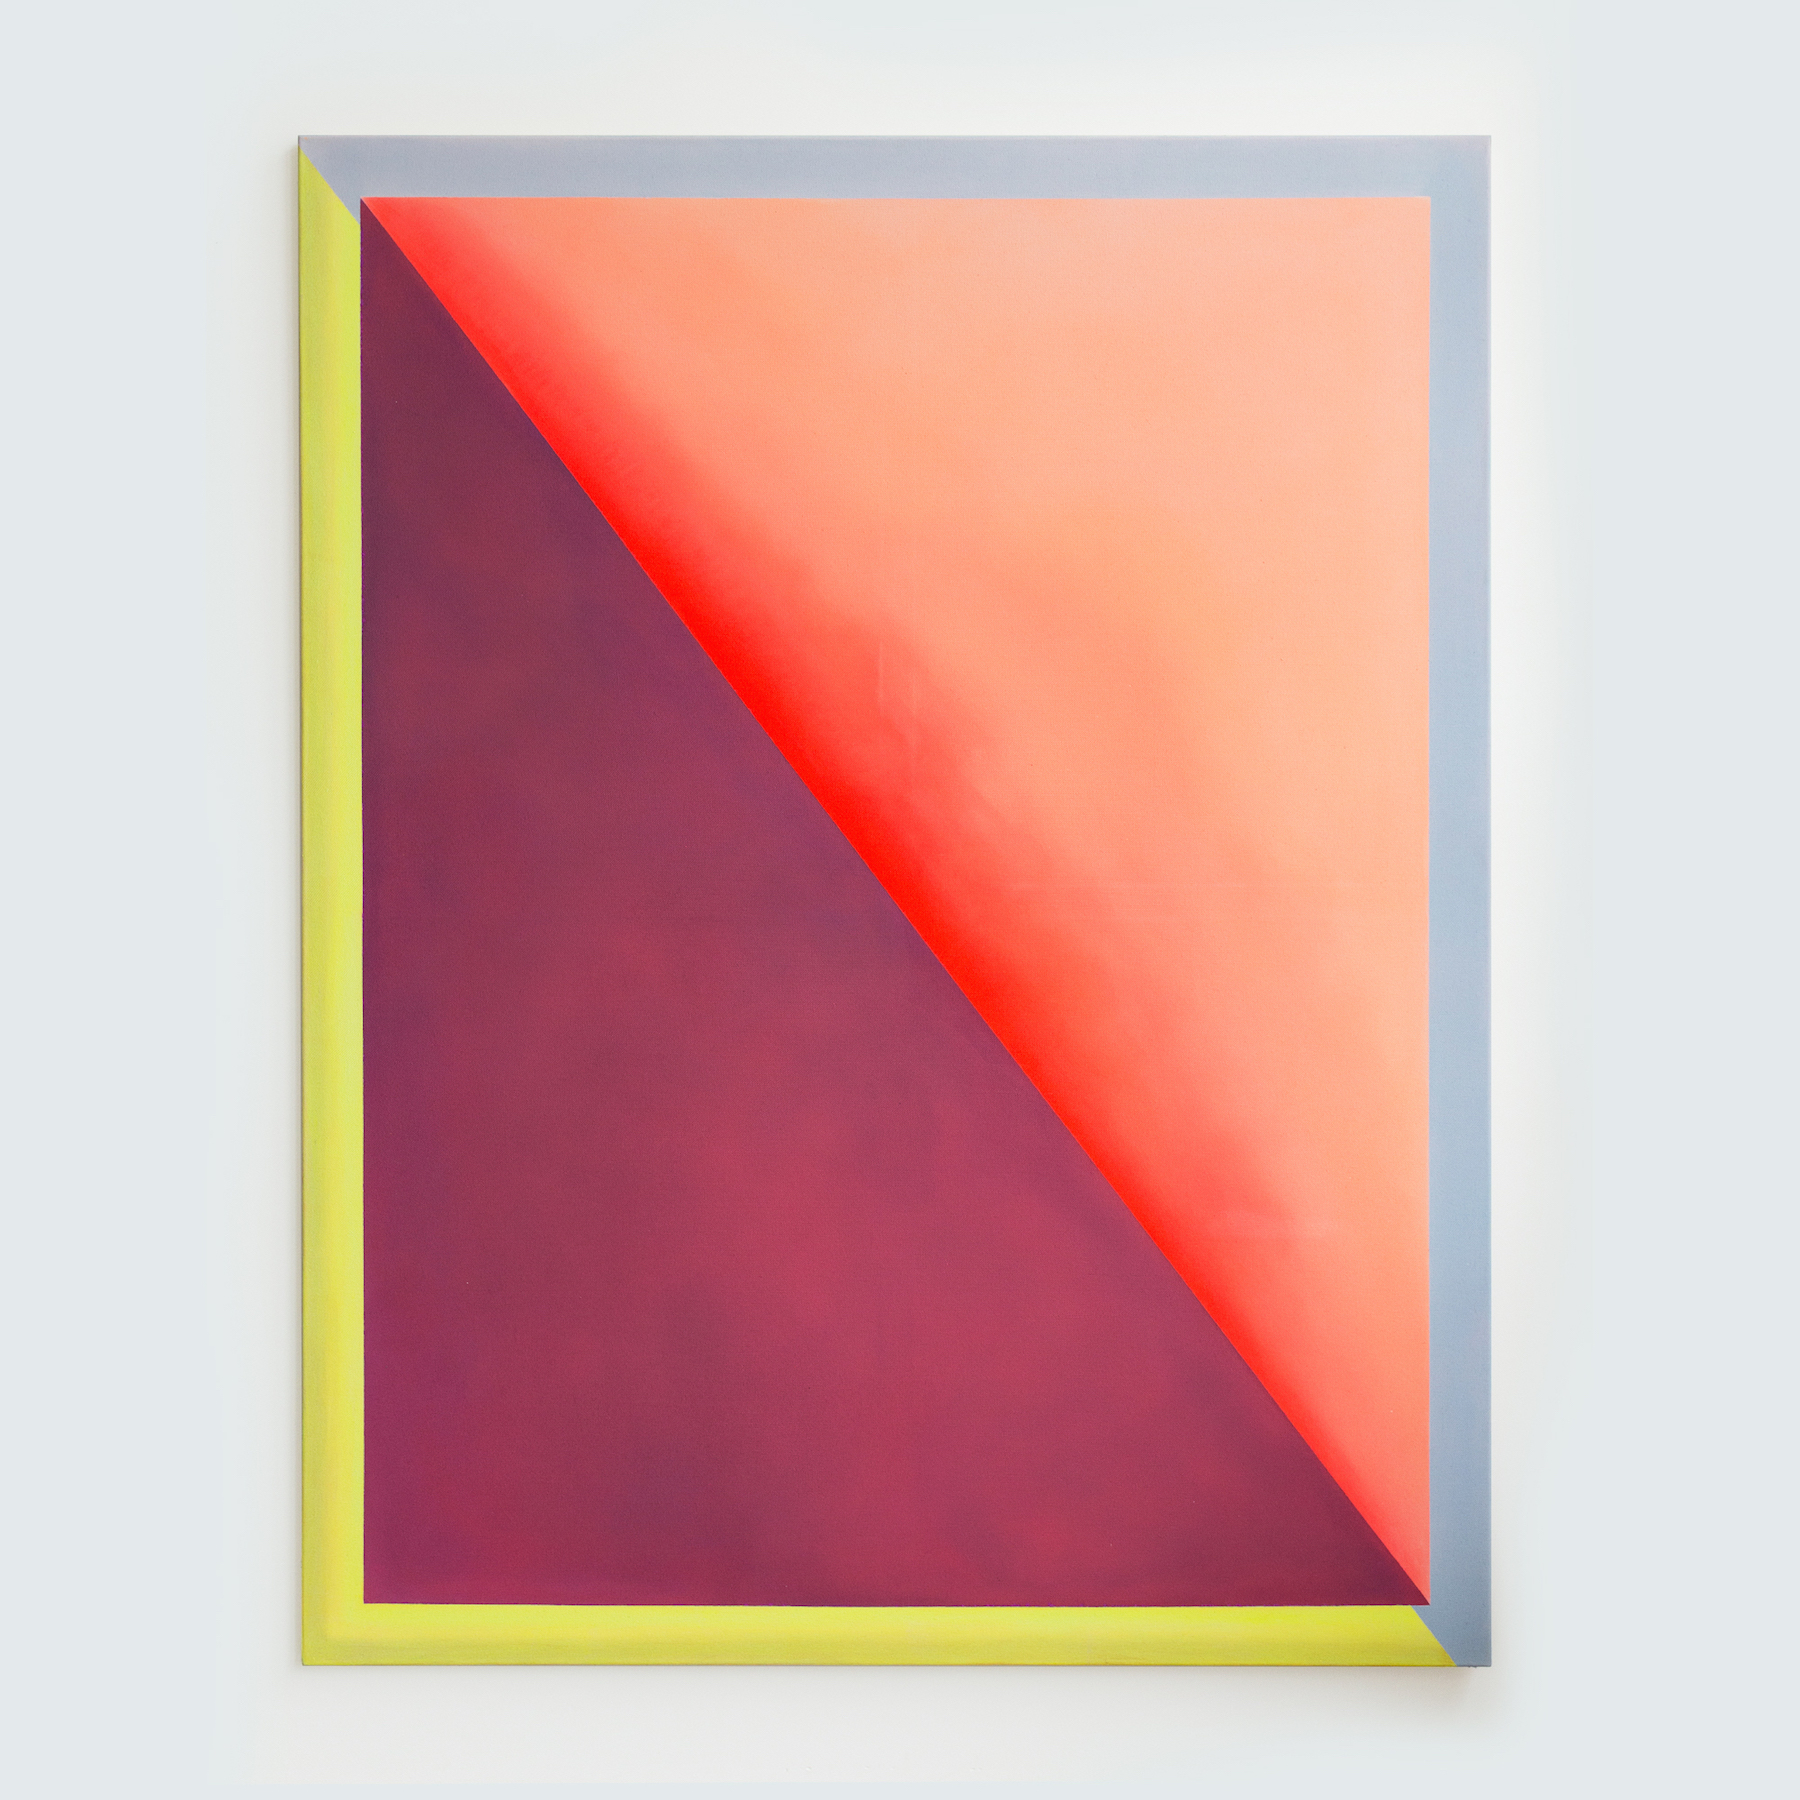 """Alina Birkner """"Untitled (Red and Purple)"""" 2015, 180x140 cm, Acrylic on Canvas"""